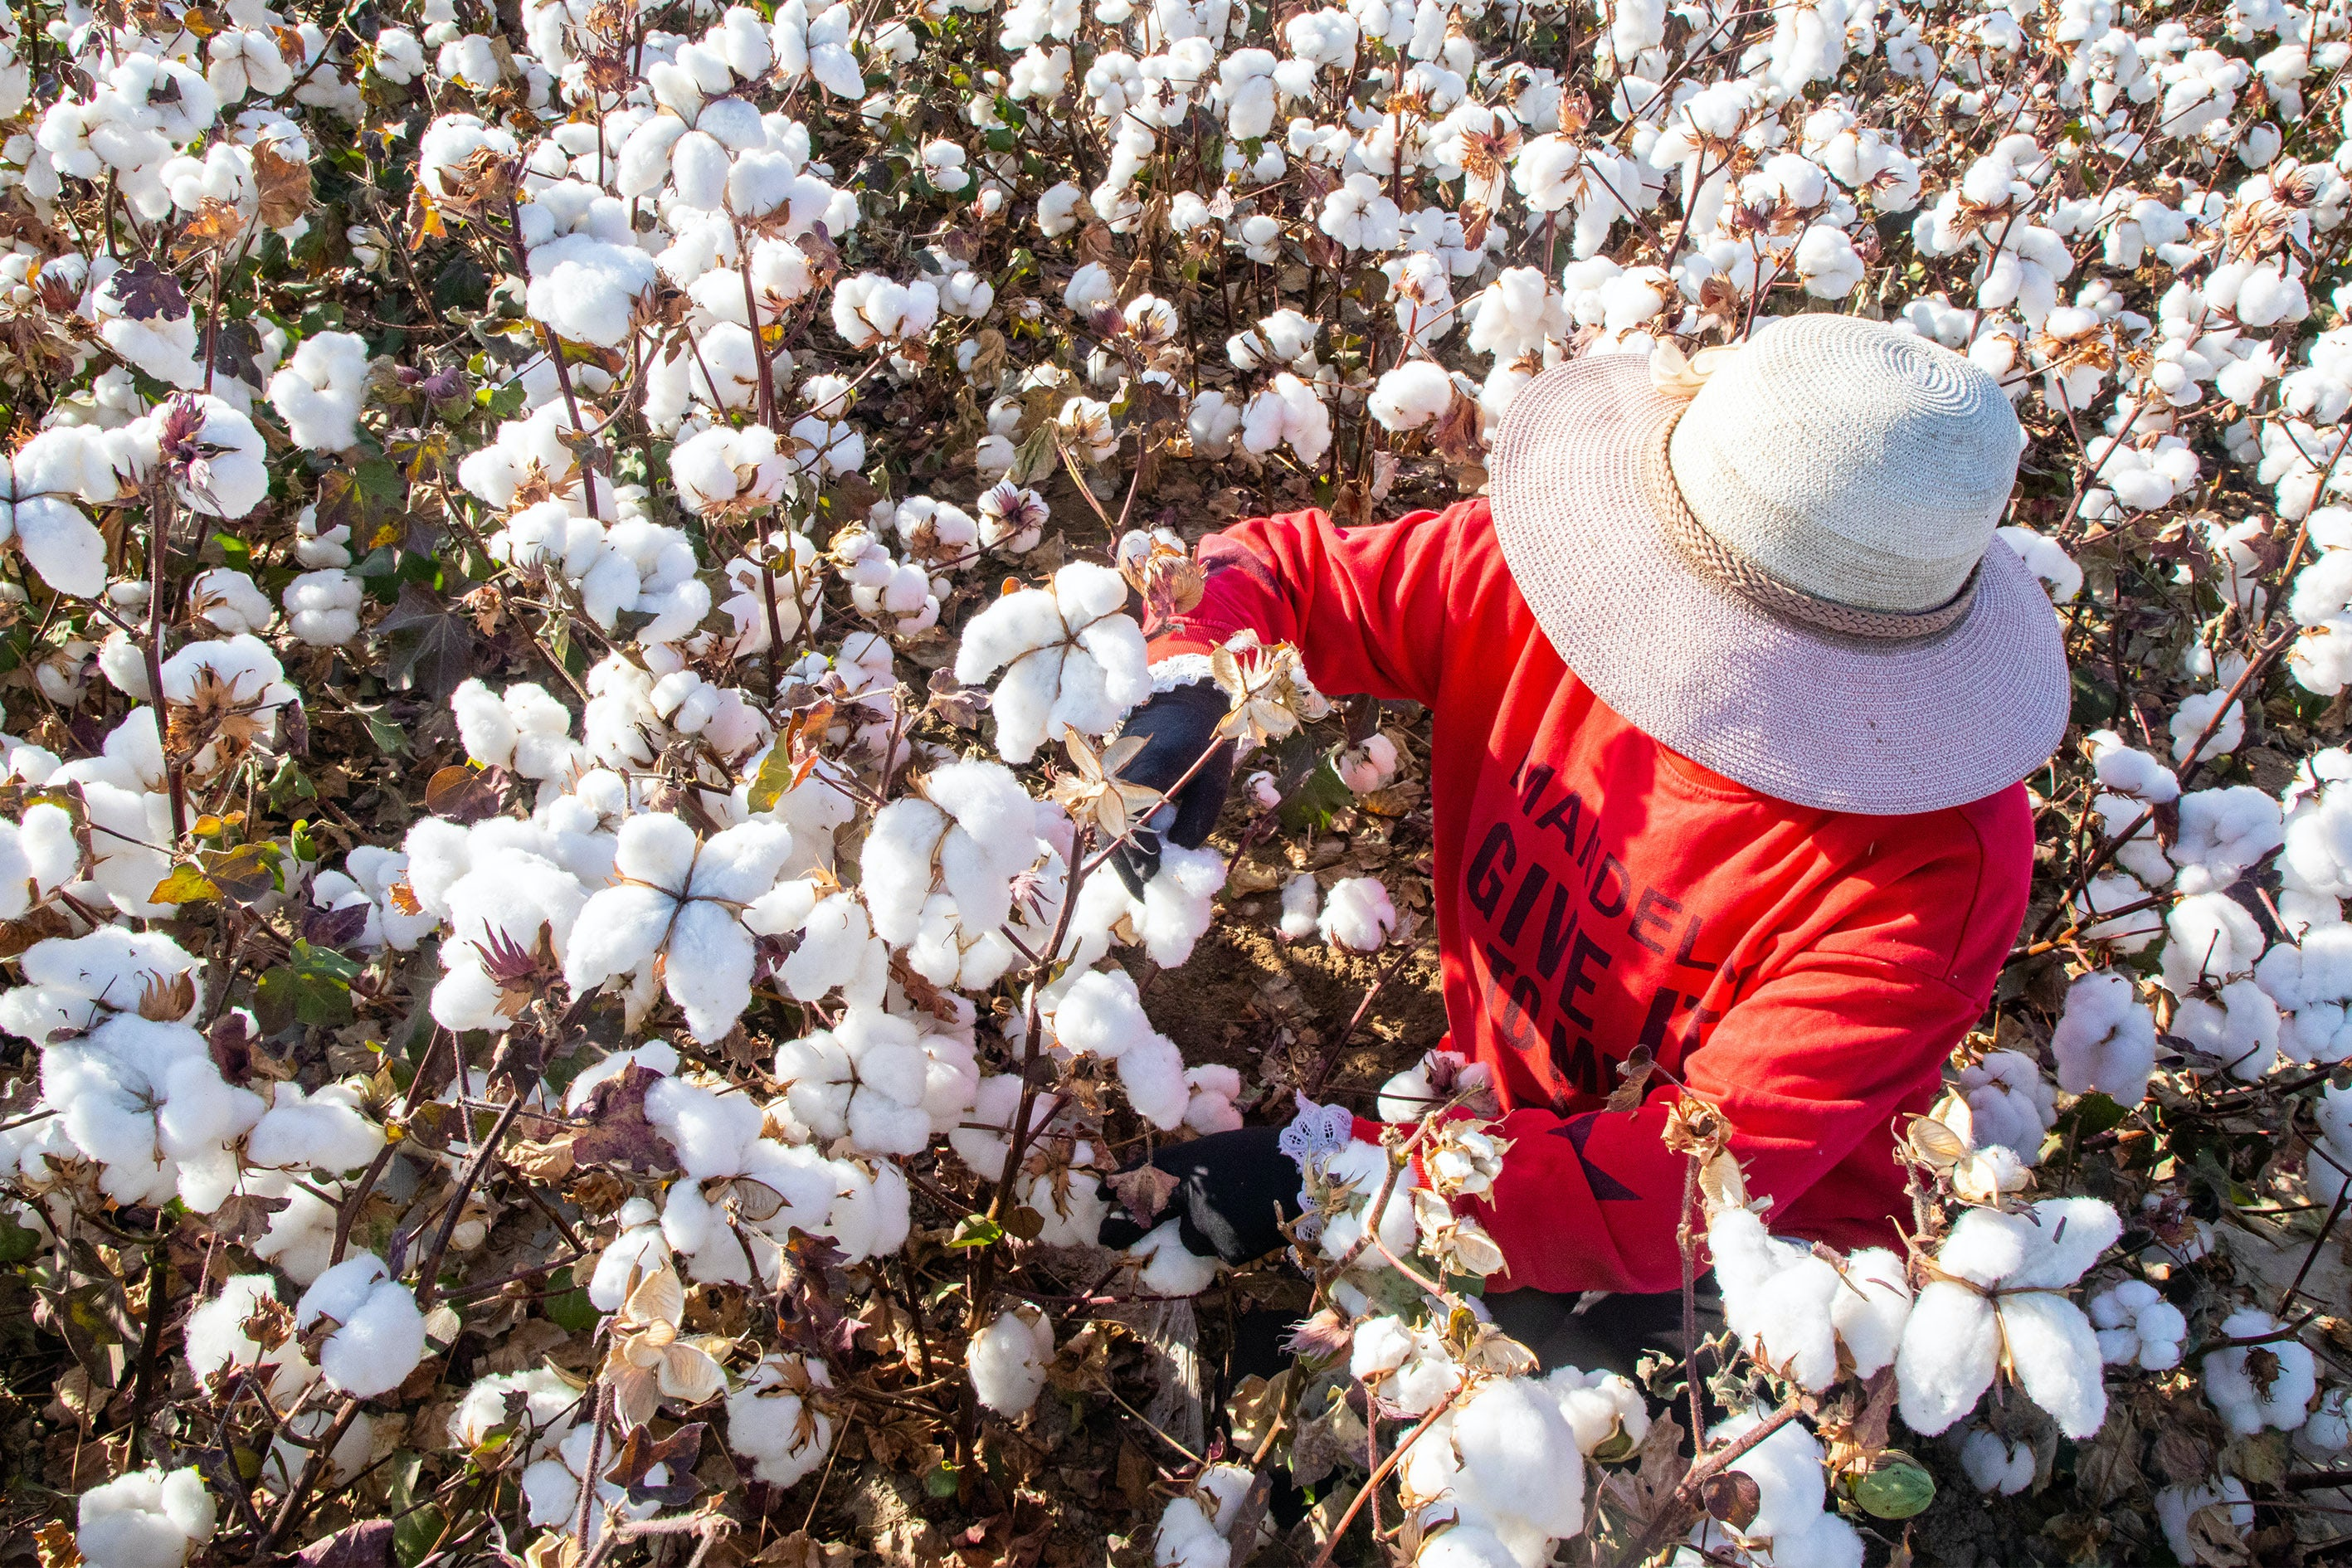 A farmer harvests cotton in Hami, Xinjiang Uighur autonomous region of China. Getty Images.